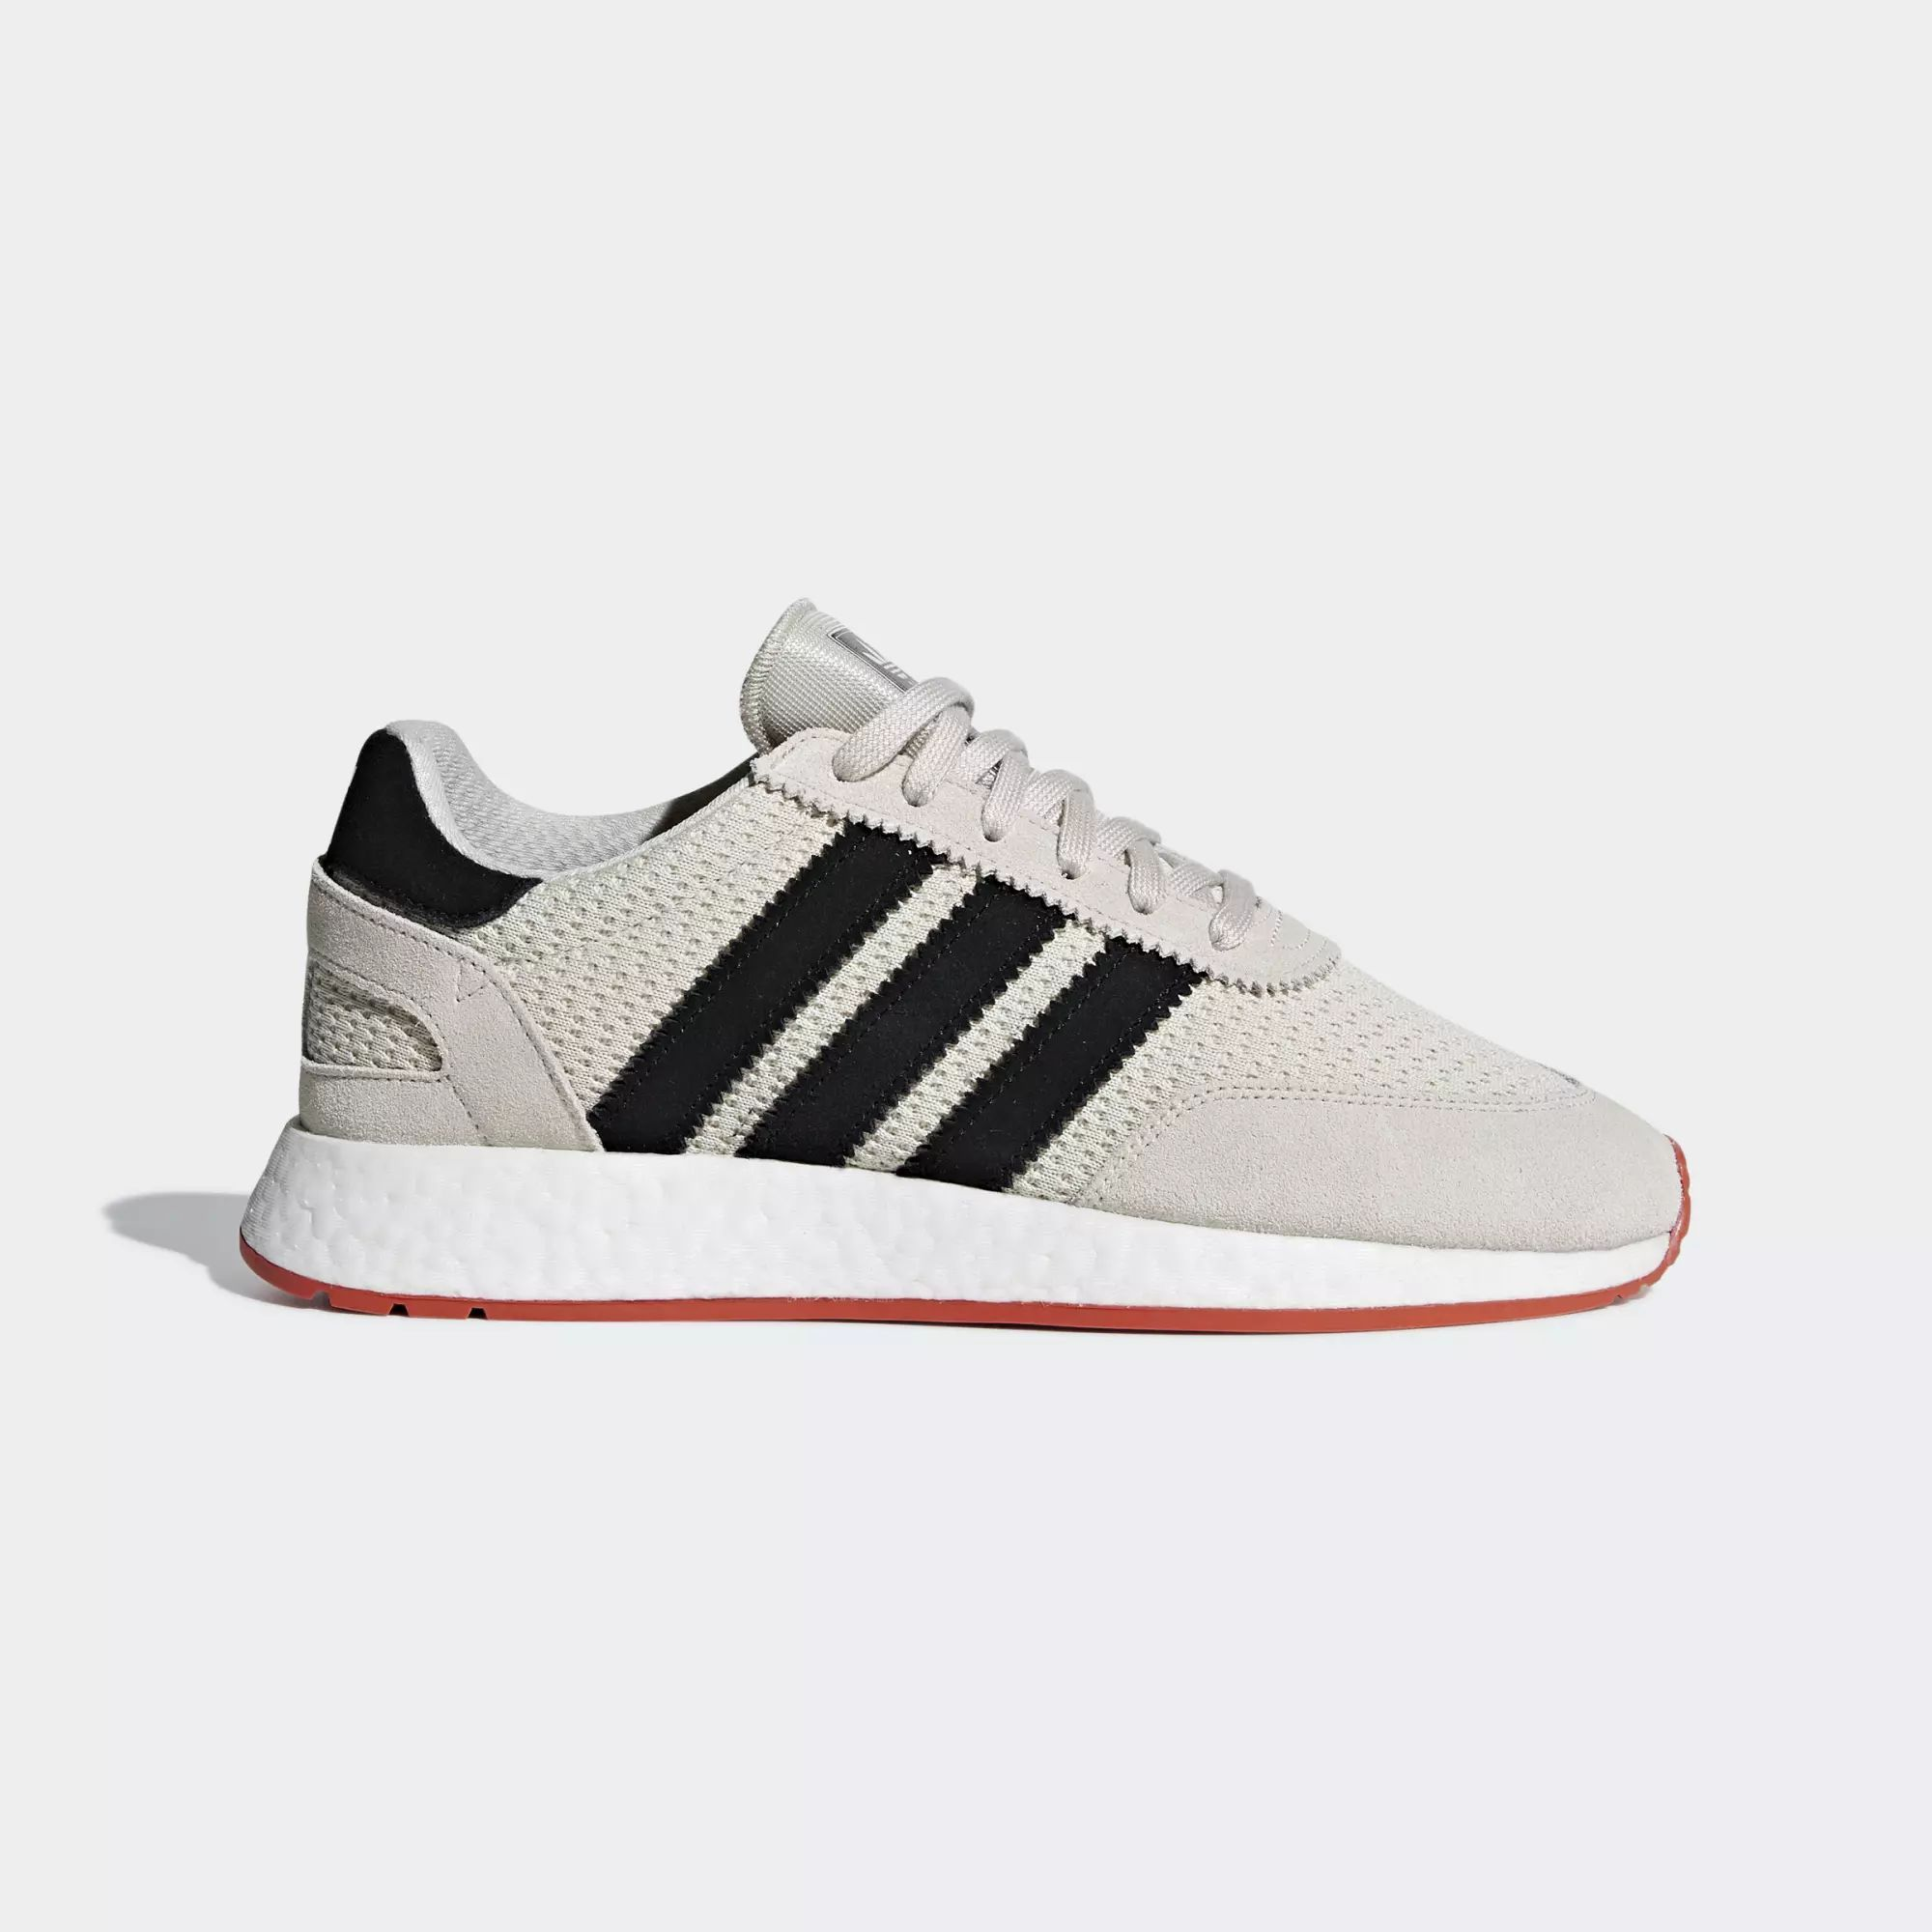 75f95ba5067  Adidas I-5923 Shoes - Clear Brown   Core Black   Raw Amber